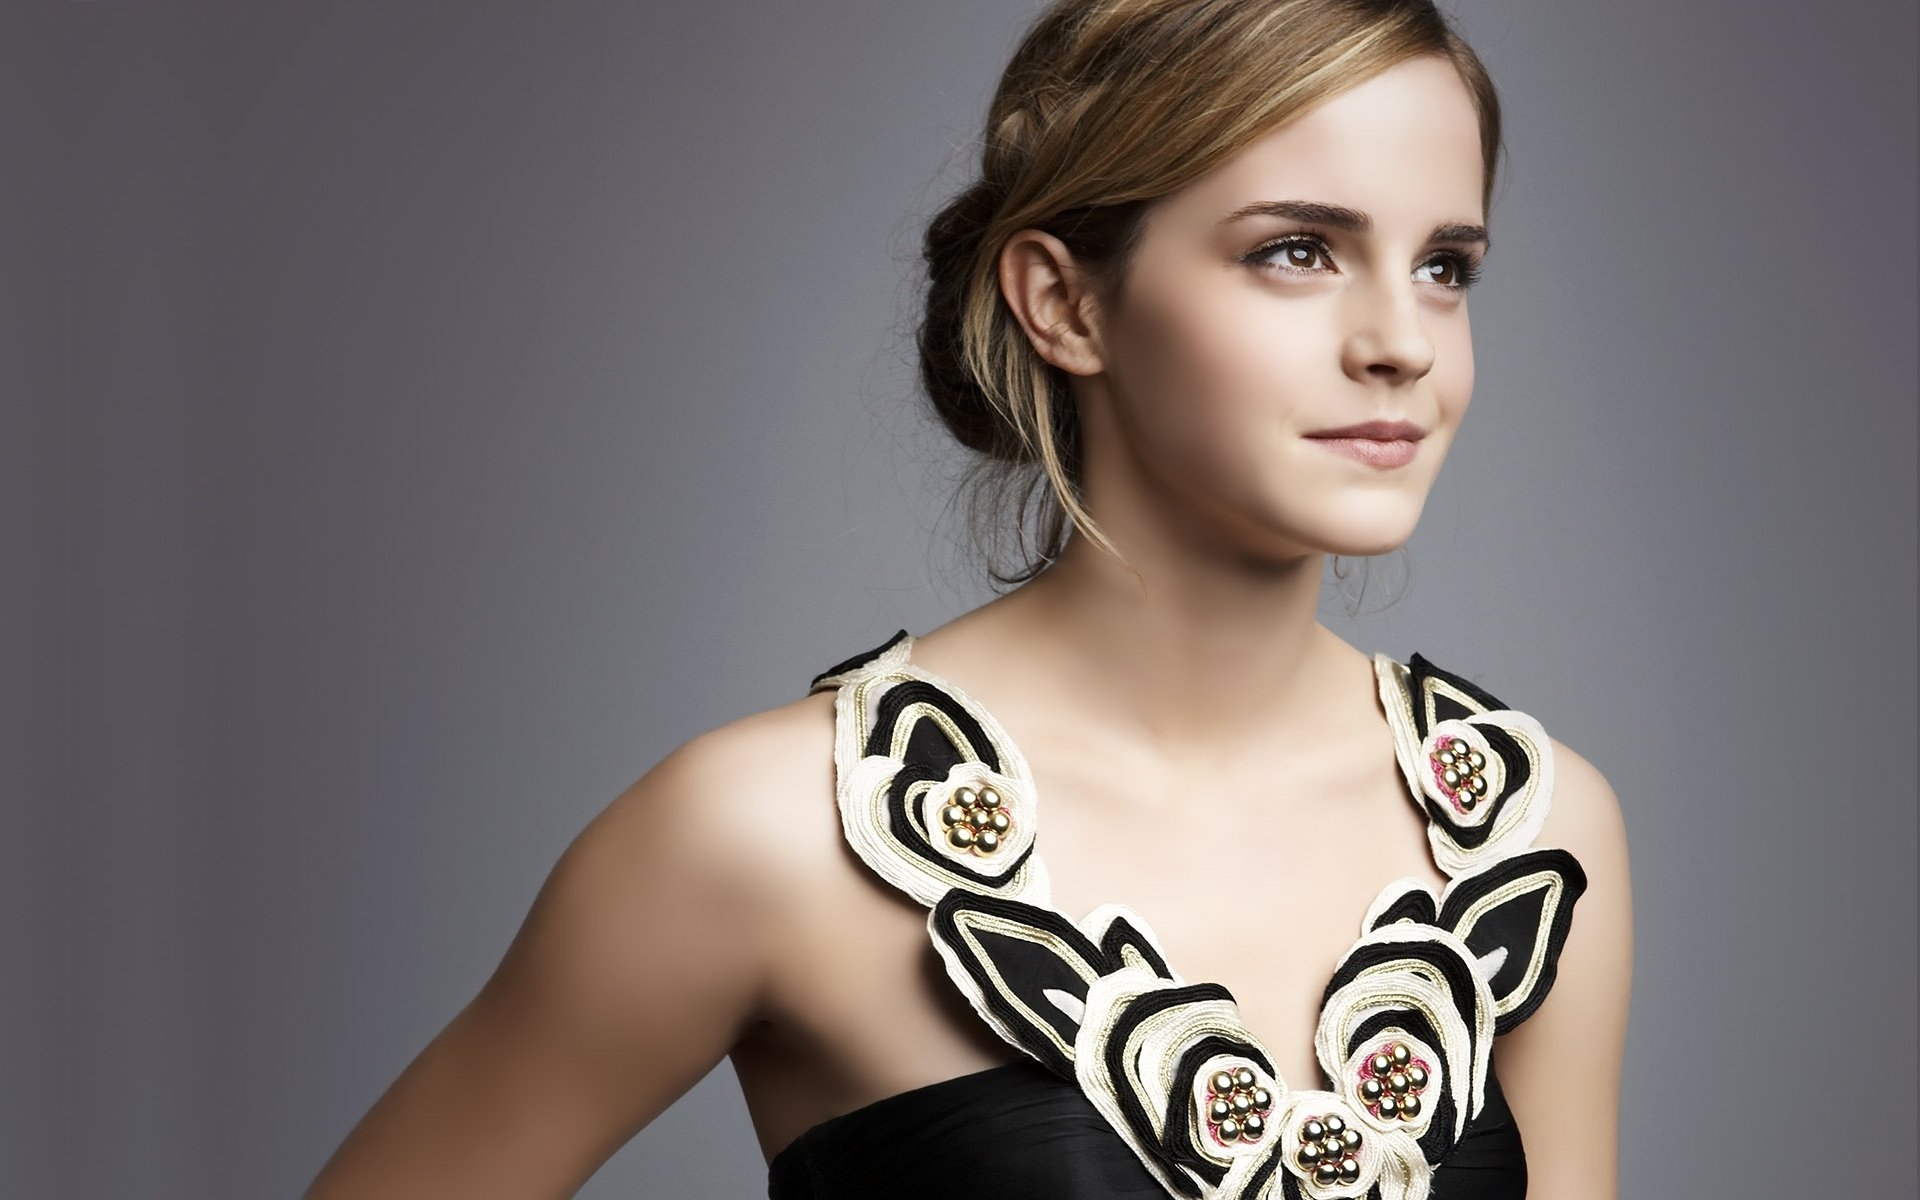 645 Emma Watson HD Wallpapers | Background Images